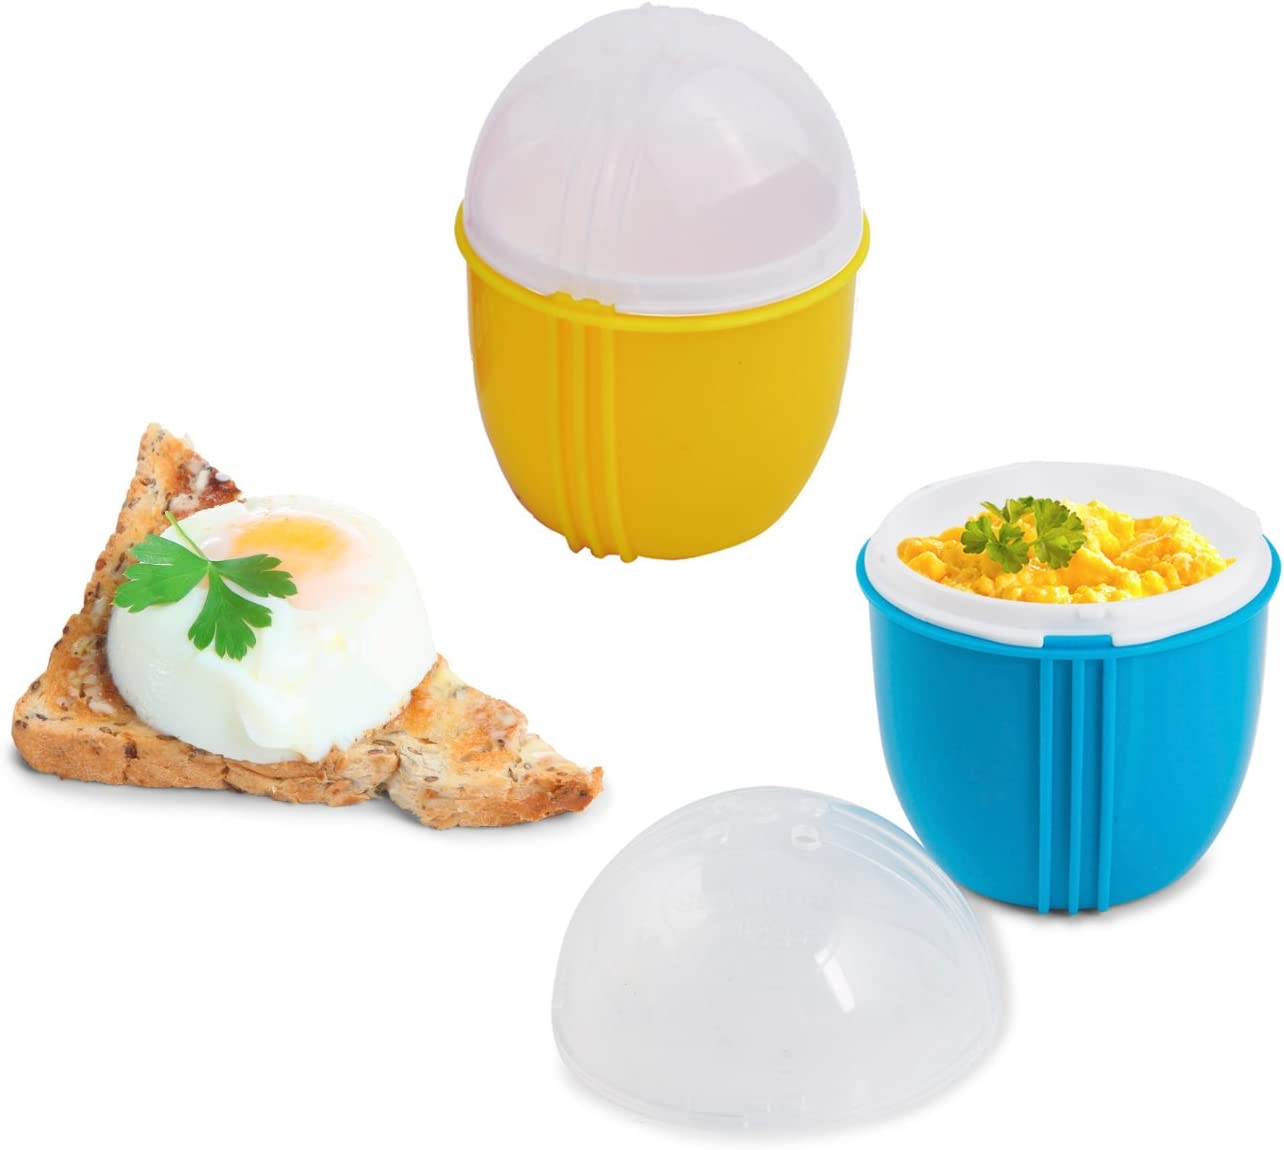 Zap Chef Microwave Egg Cooker Pack of 2, Healthy Scrambled Eggs,1 Minute Egg Poacher, Cool Touch Omlette Maker, 100% Food Safe BPA Free, Color May Vary